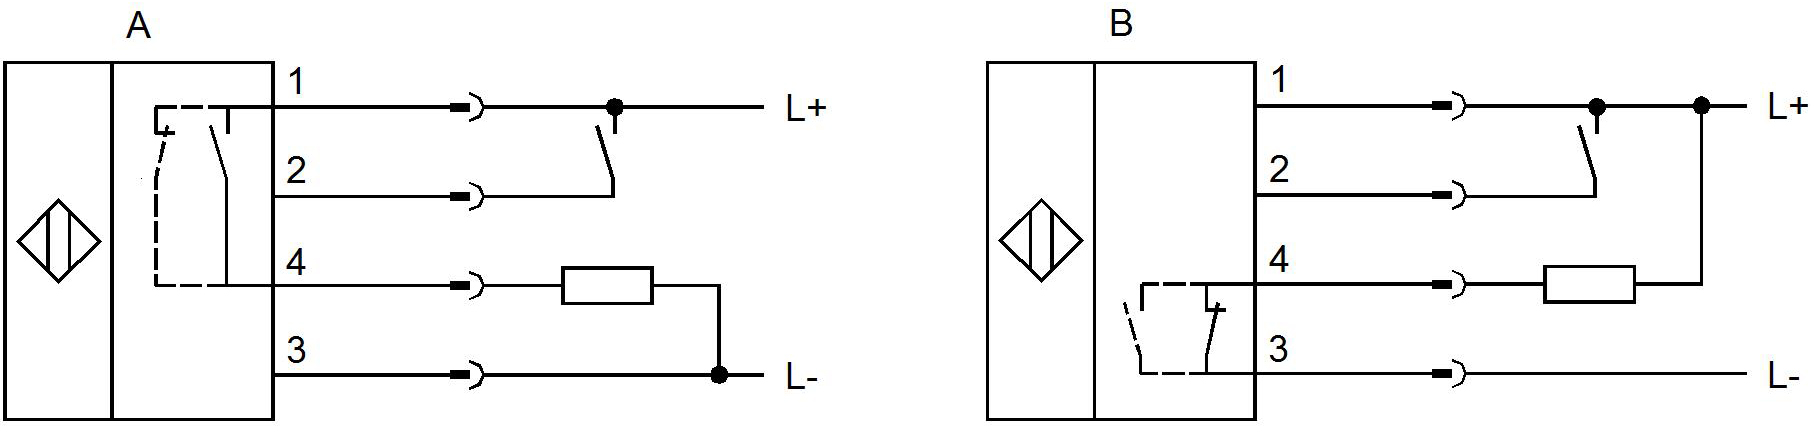 hight resolution of photoelectric sensor wiring diagram receiver emitter